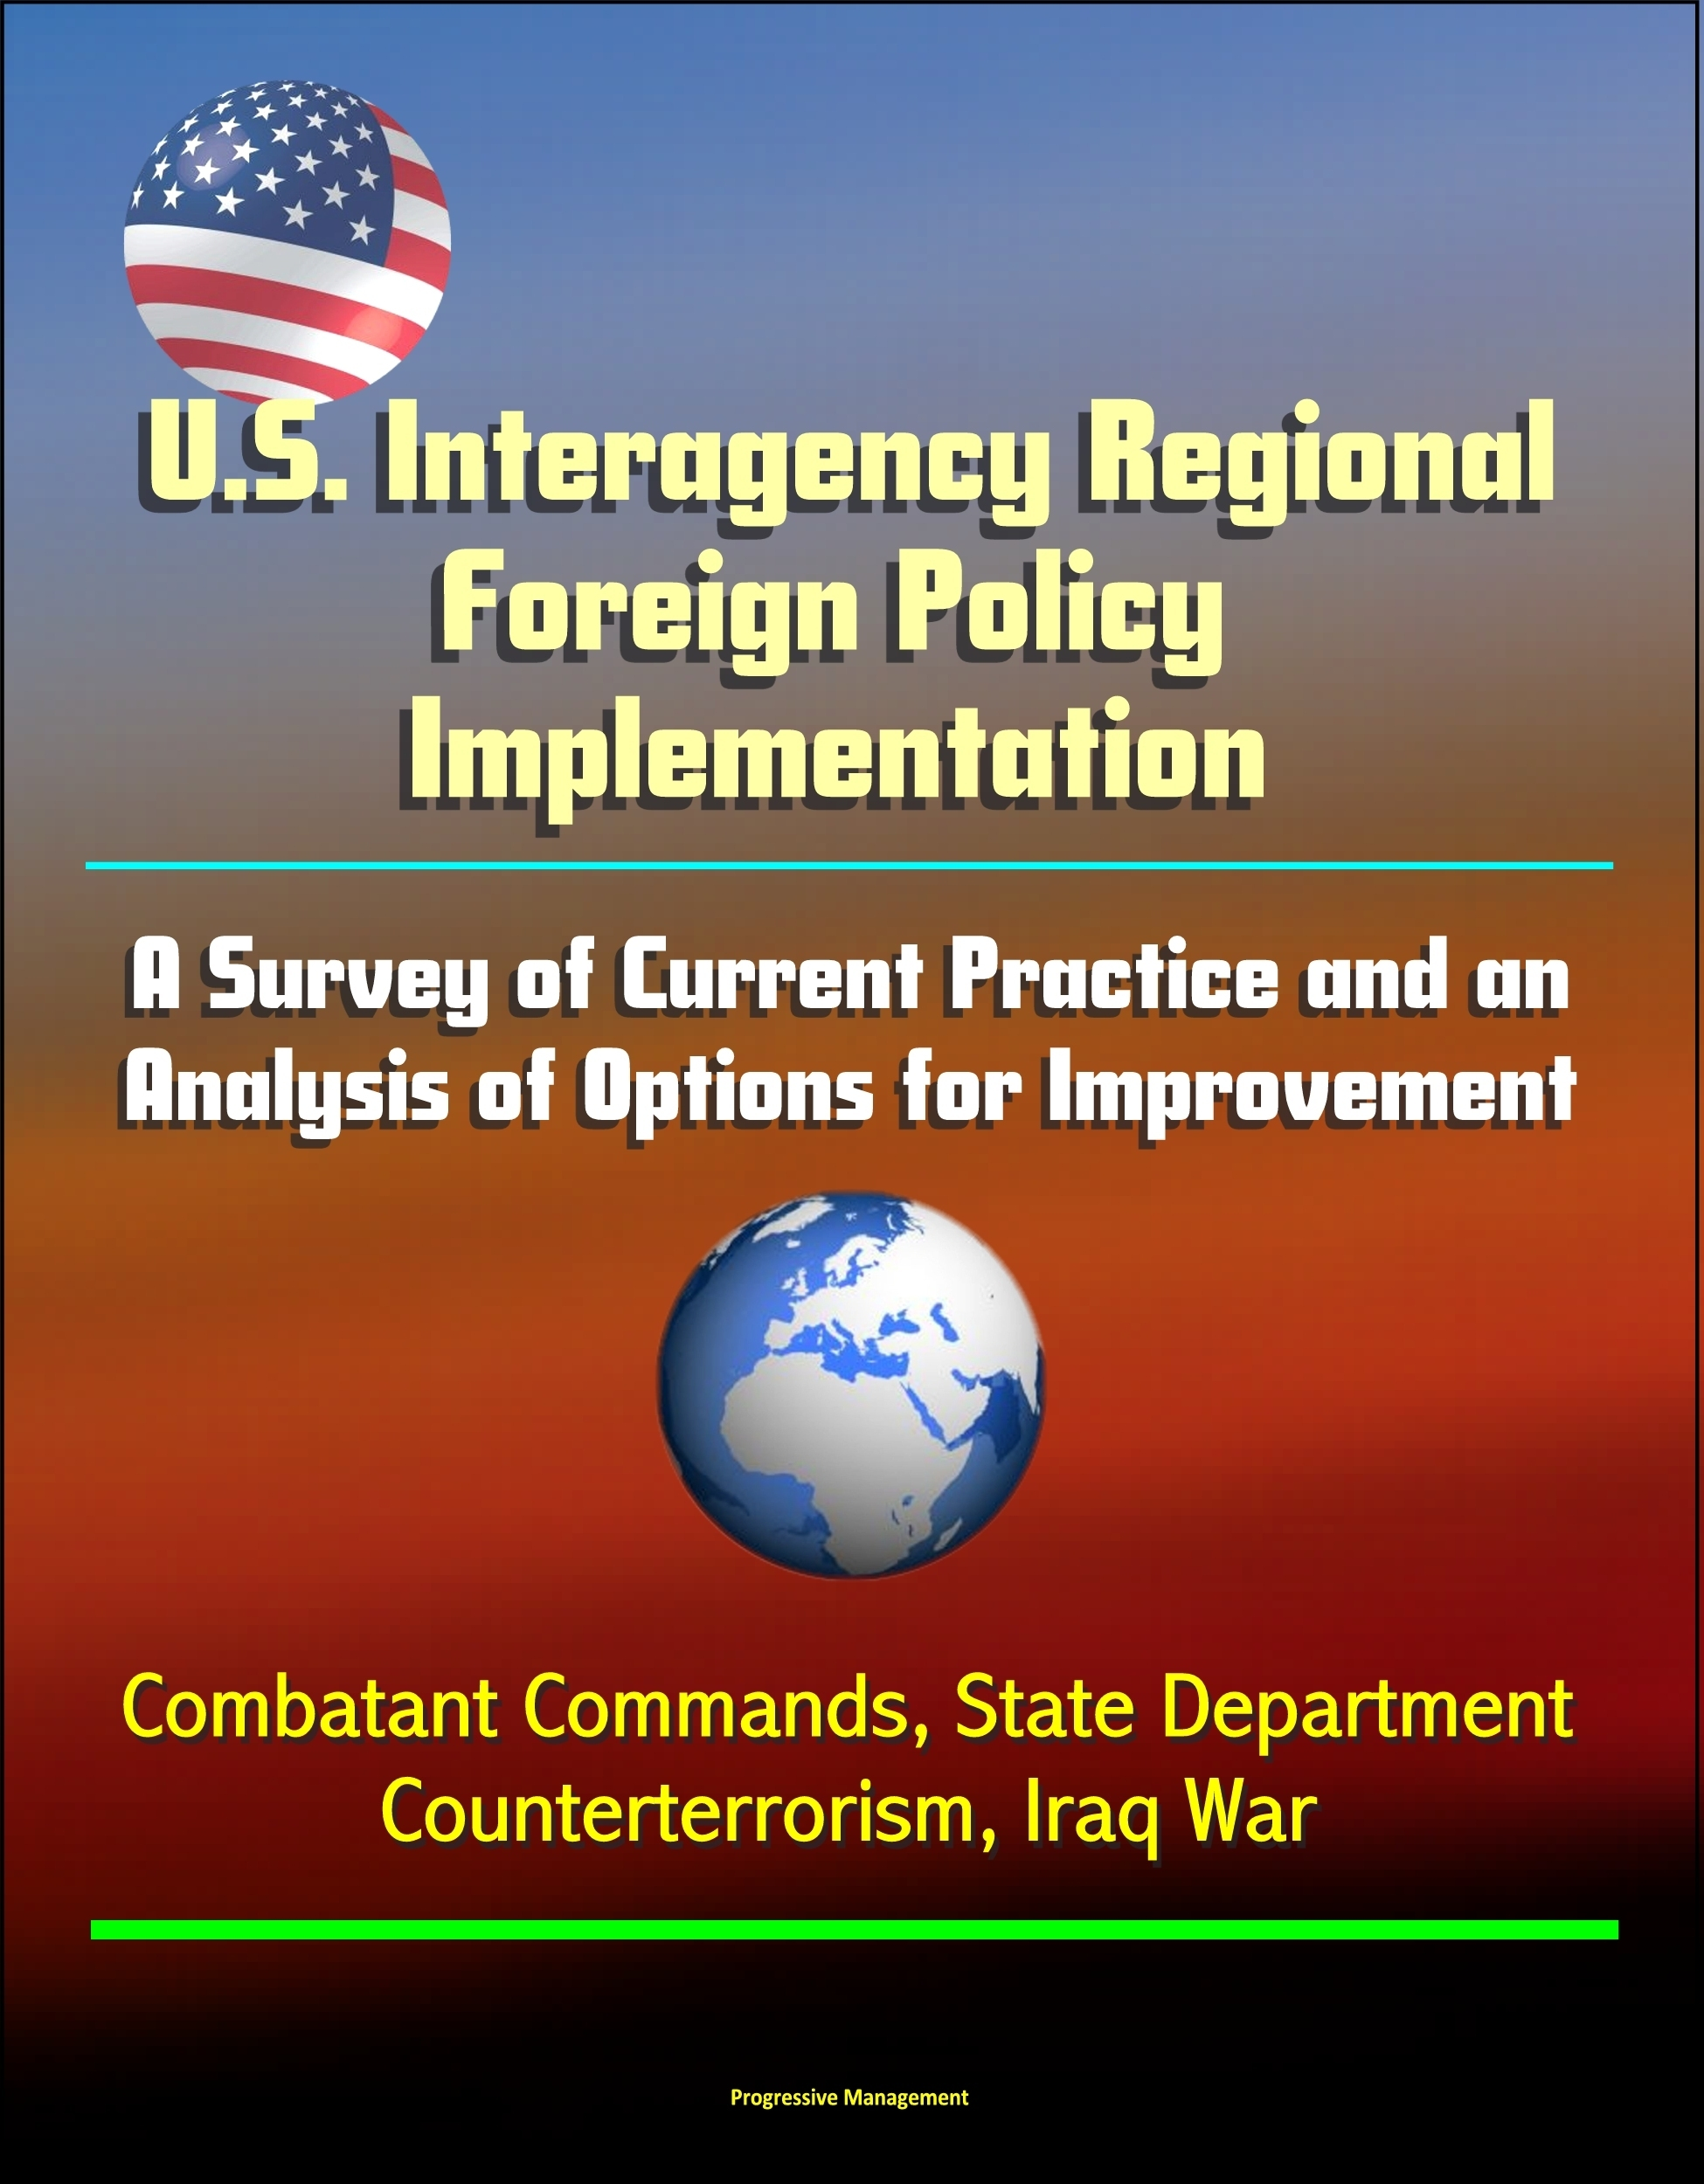 U.S. Interagency Regional Foreign Policy Implementation: A Survey of Current Practice and an Analysis of Options for Improvement - Combatant Commands, State Department, Counterterrorism, Iraq War Progressive Management